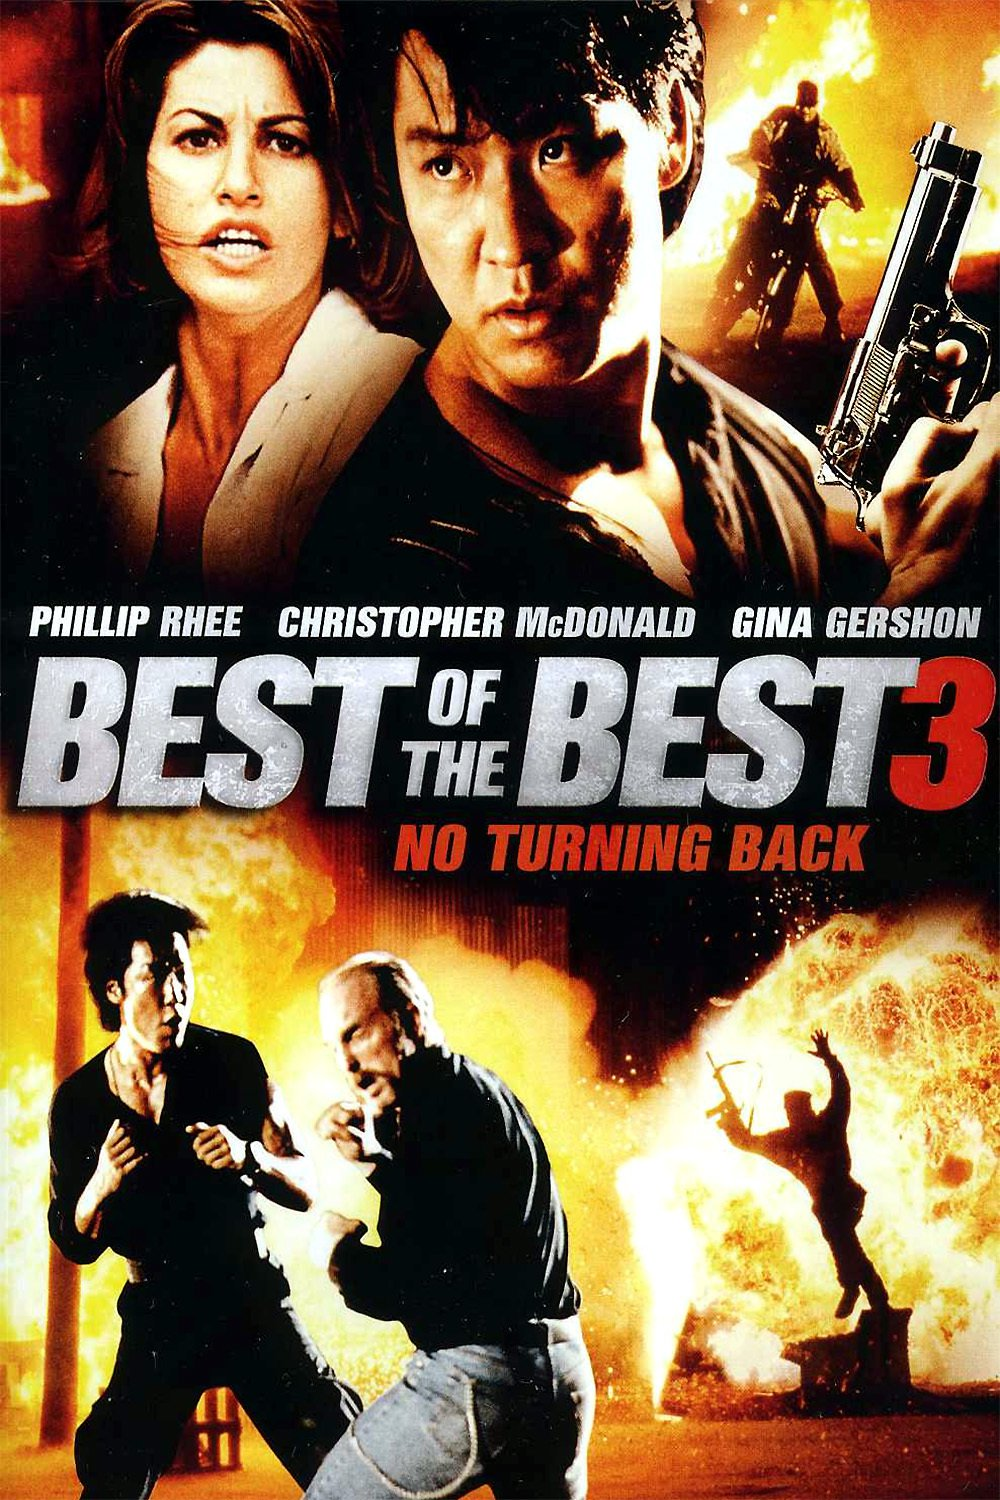 Best.of.the.Best.3.1995.R.RATED.GERMAN.DL.PAL.DVDR.iNViTE